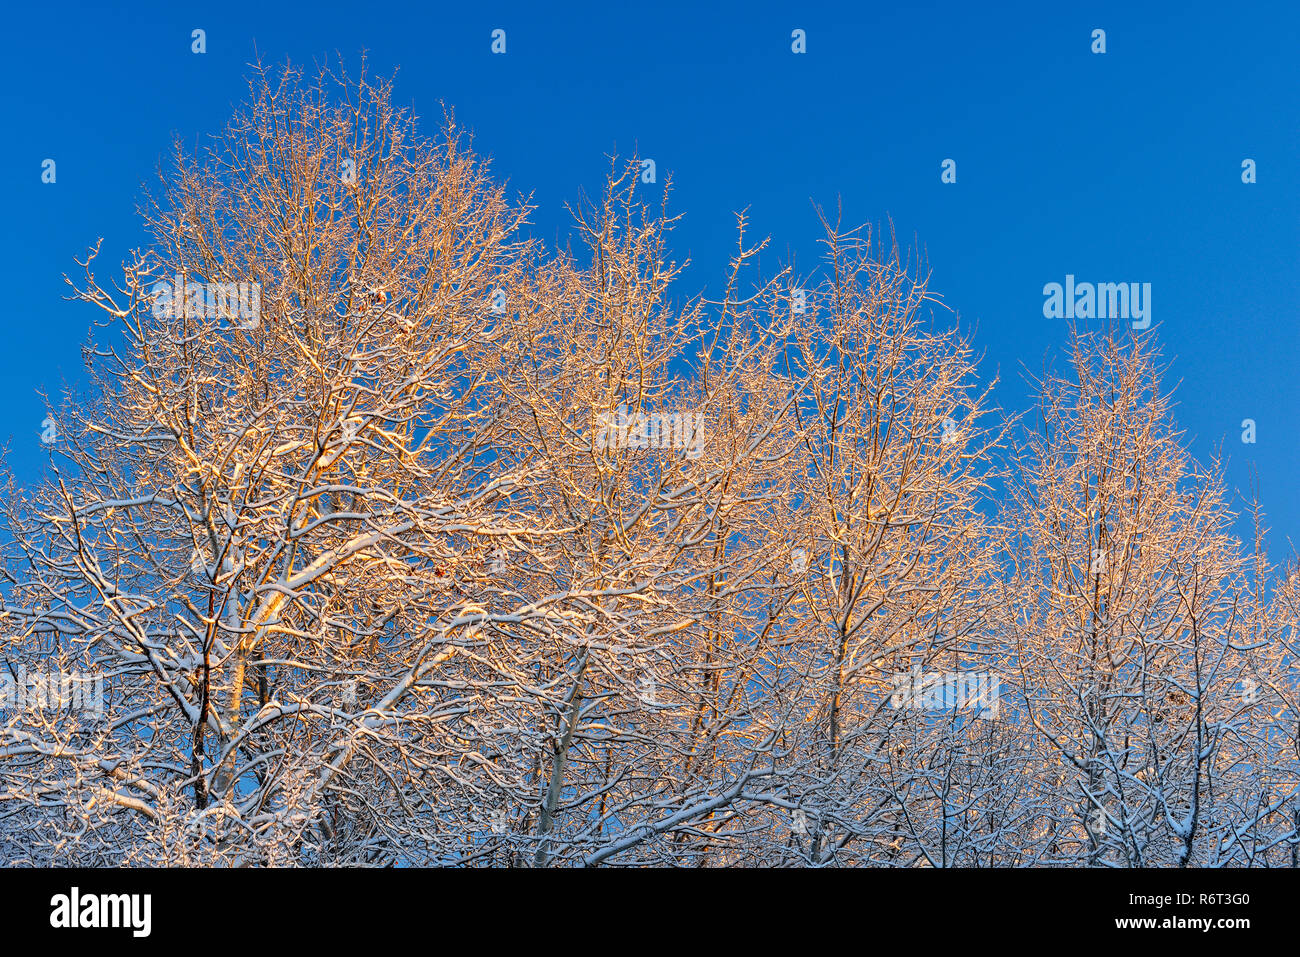 Snow-dusted trees in early morning, Greater Sudbury, Ontario, Canada - Stock Image